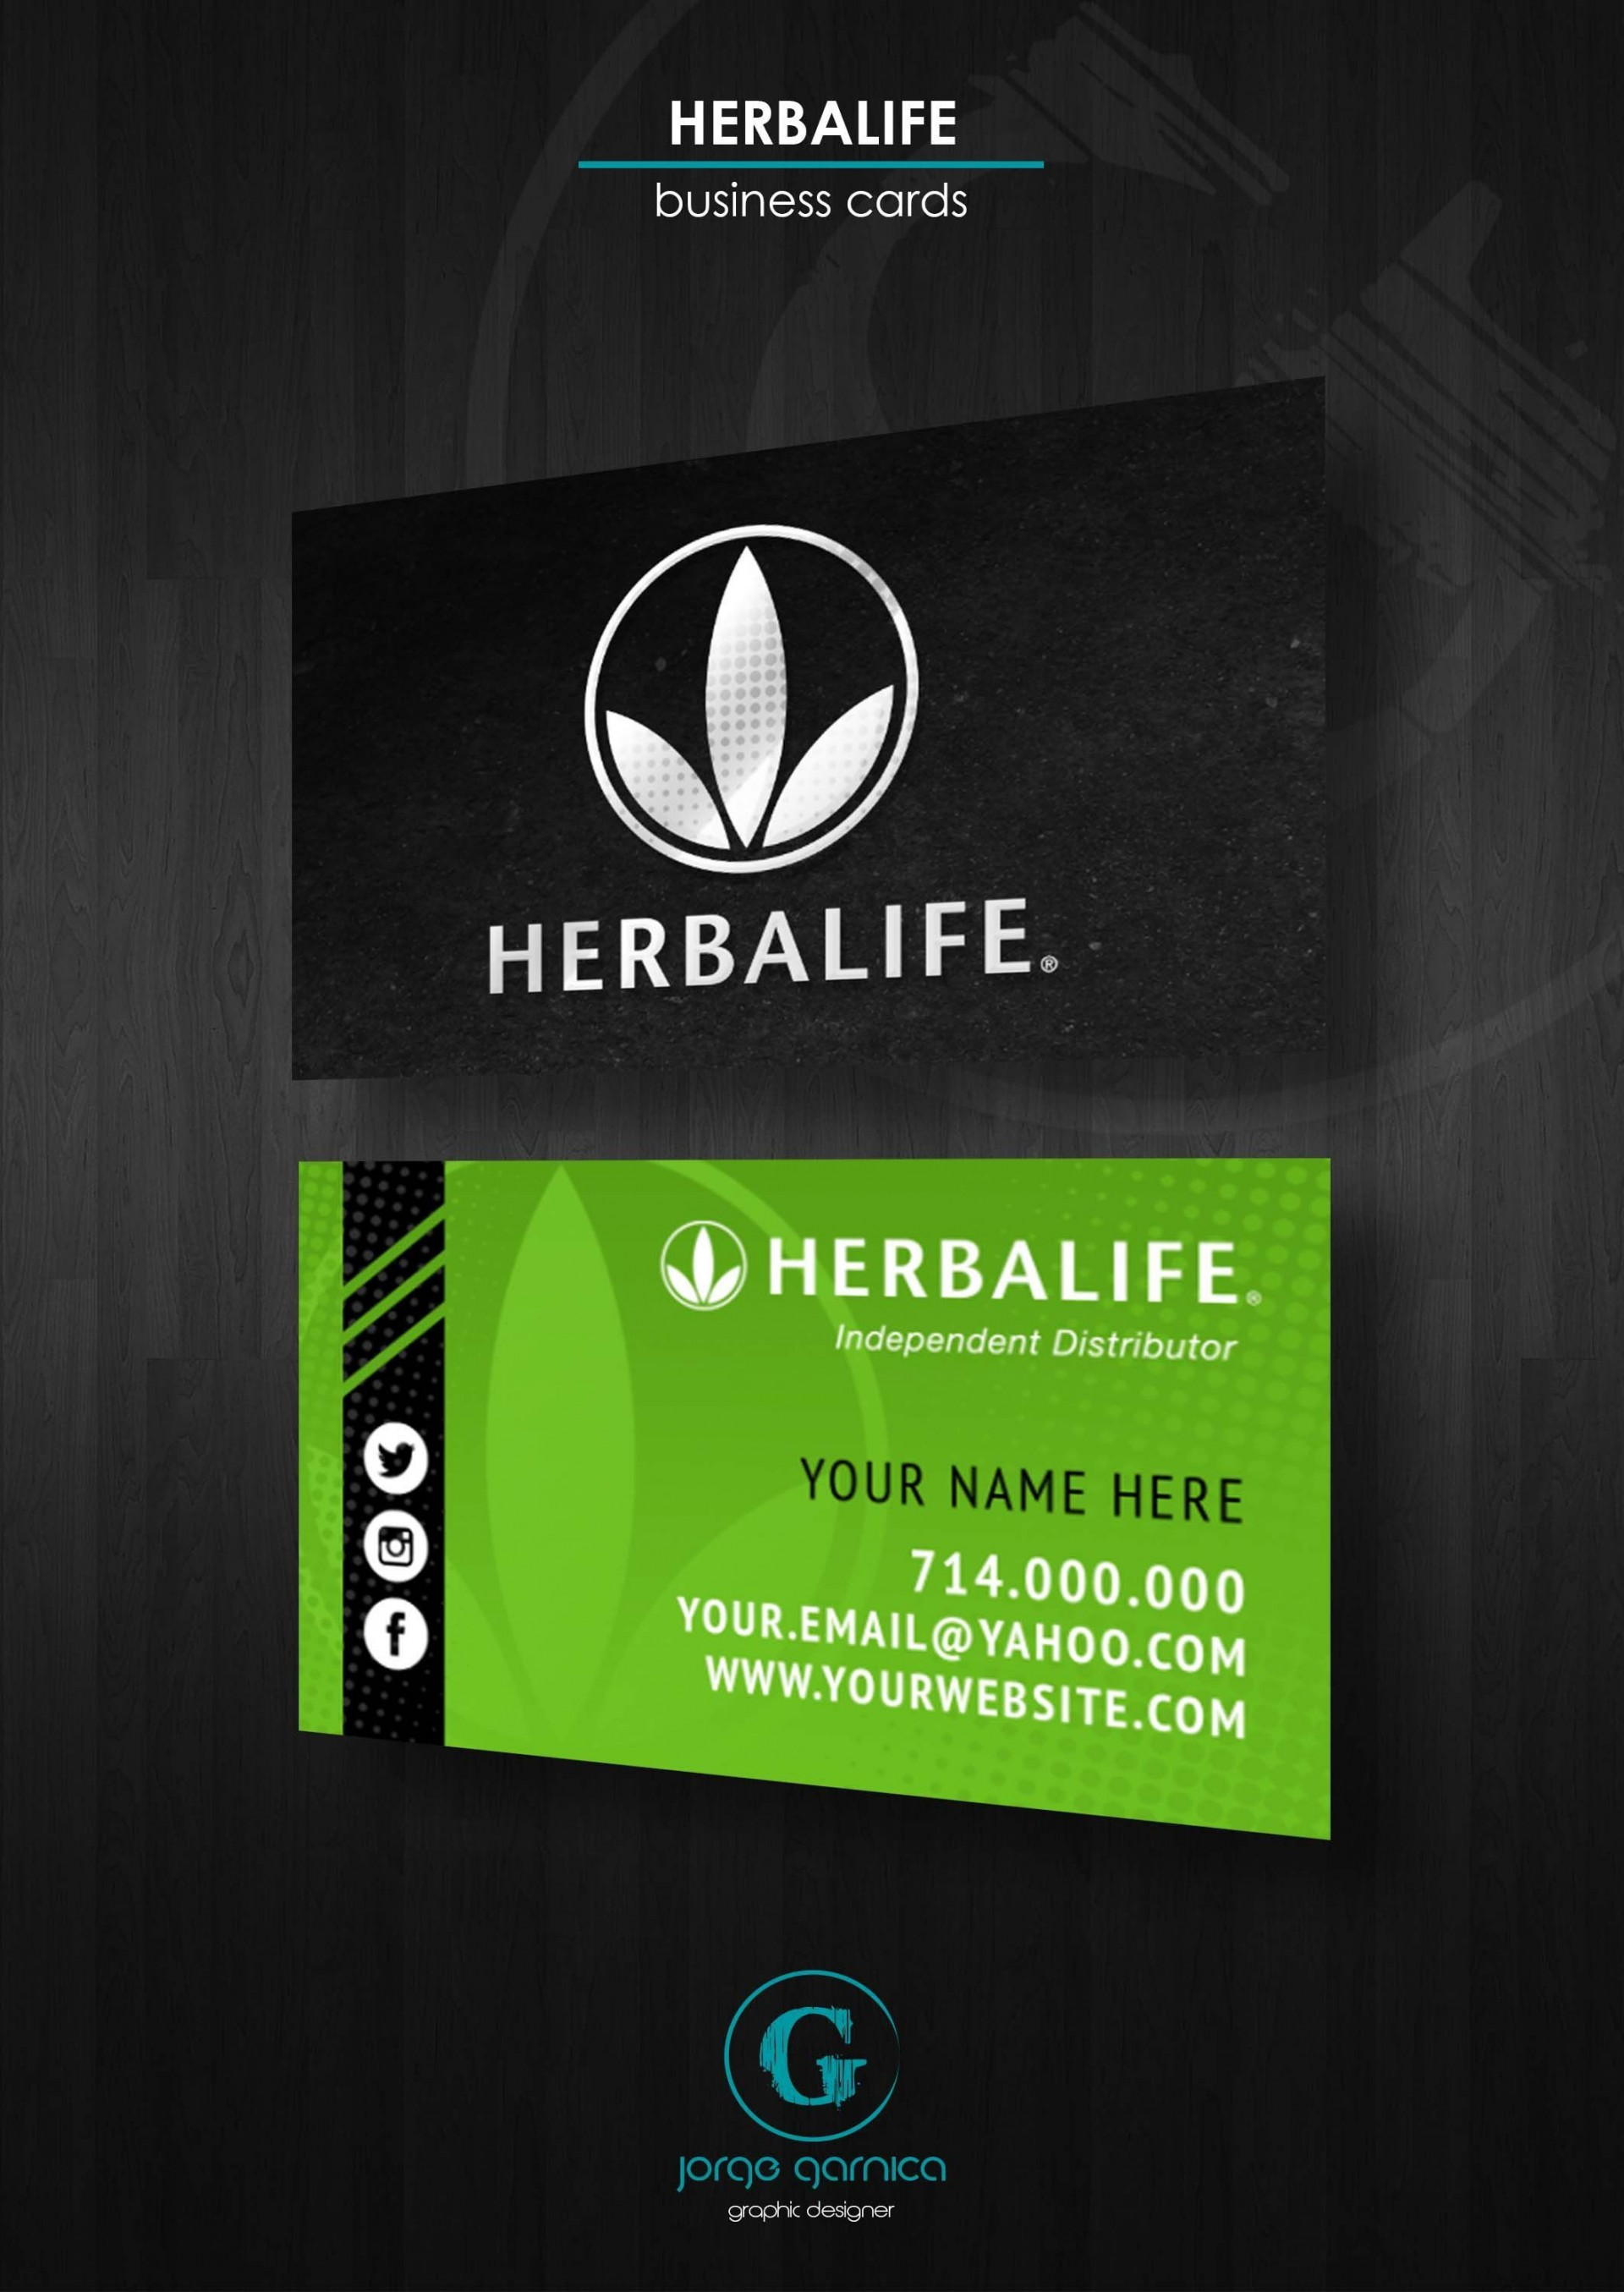 000 Amazing Herbalife Busines Card Template Highest Clarity  Download Free1920